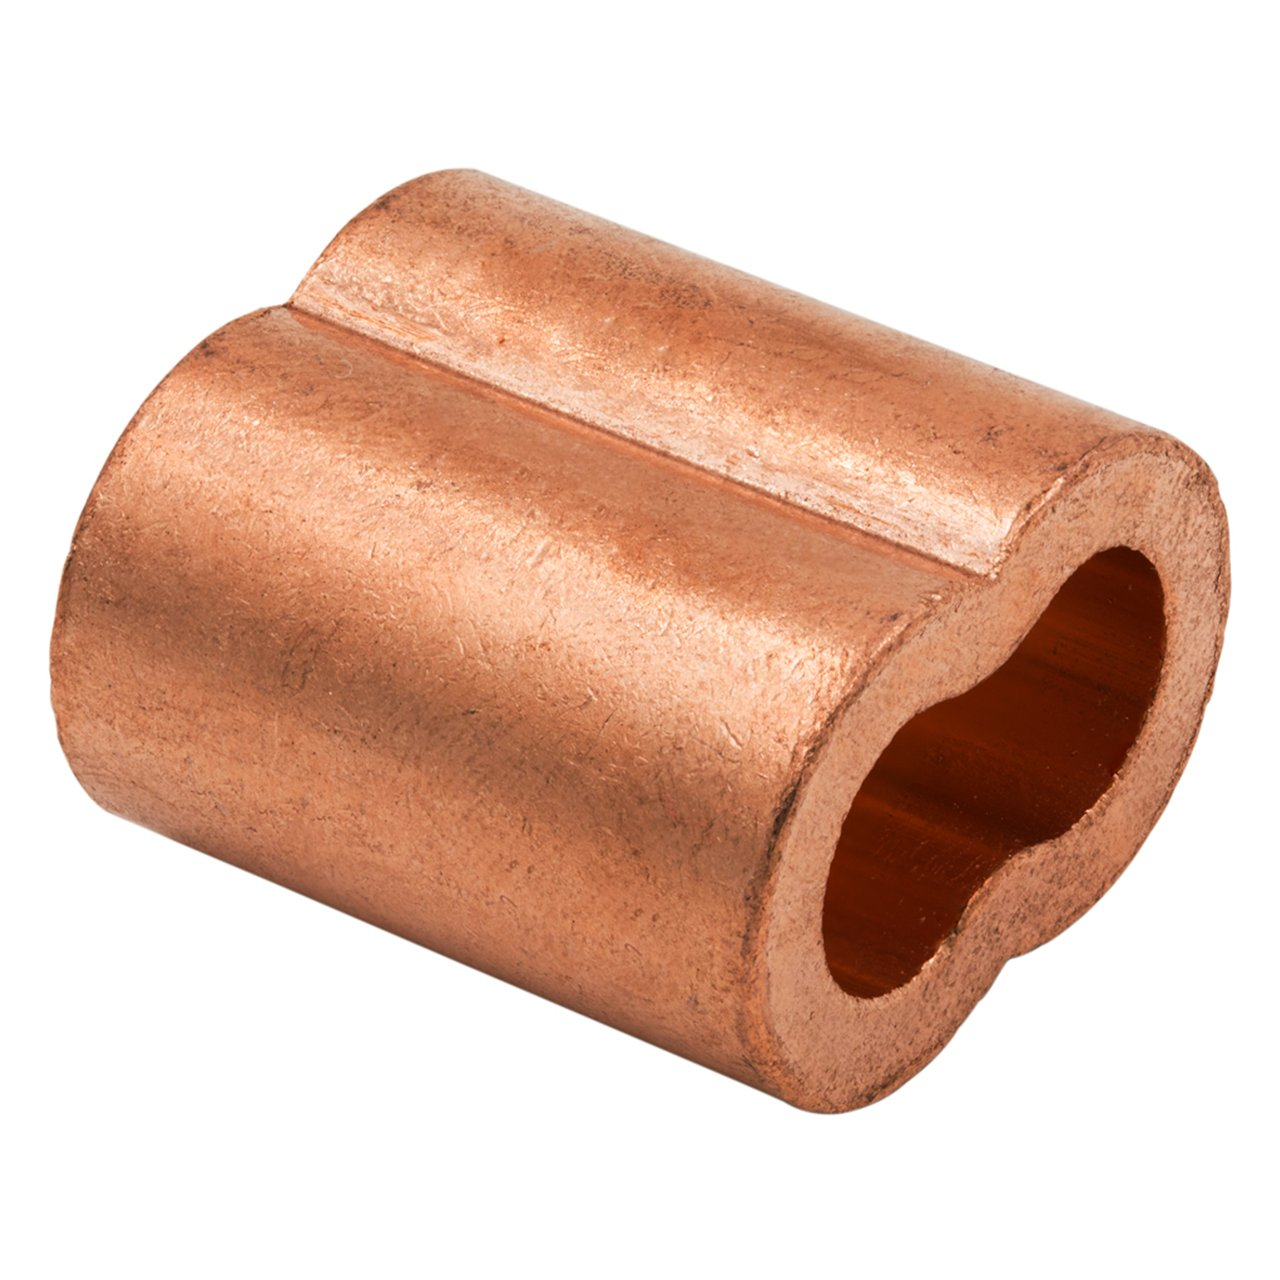 SwageRight Copper Swage Sleeves & Ferrules | Oval Duplex Crimping Loop Fittings (1/32 inch - 1/2 inch)